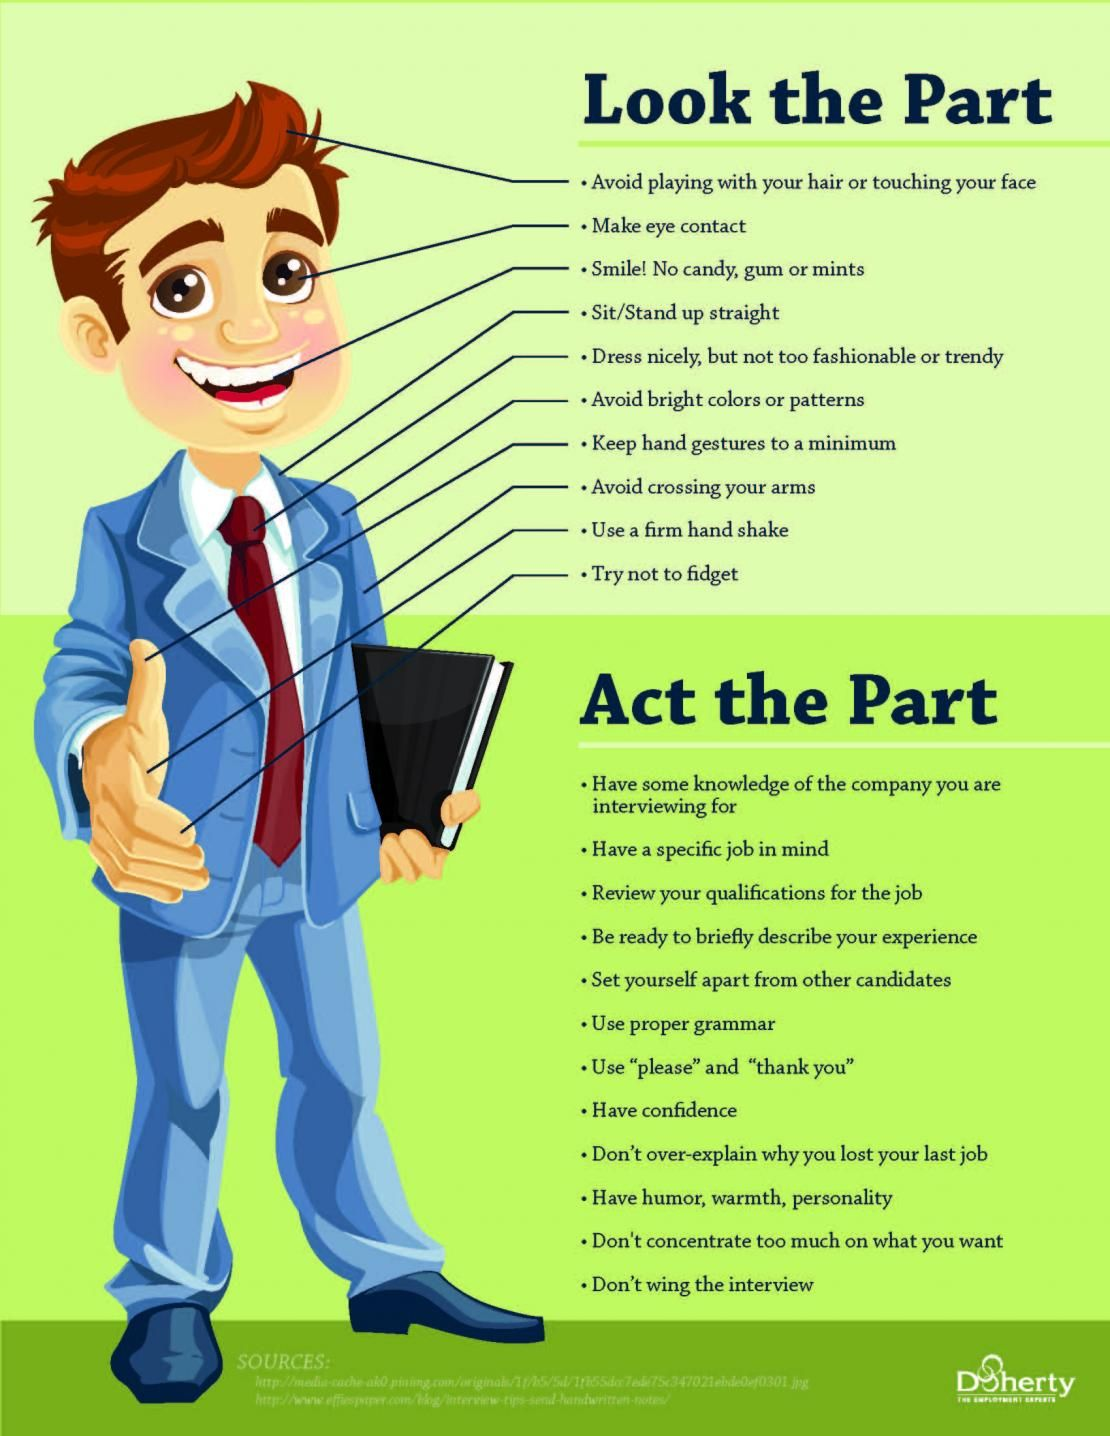 How to behave during the interview